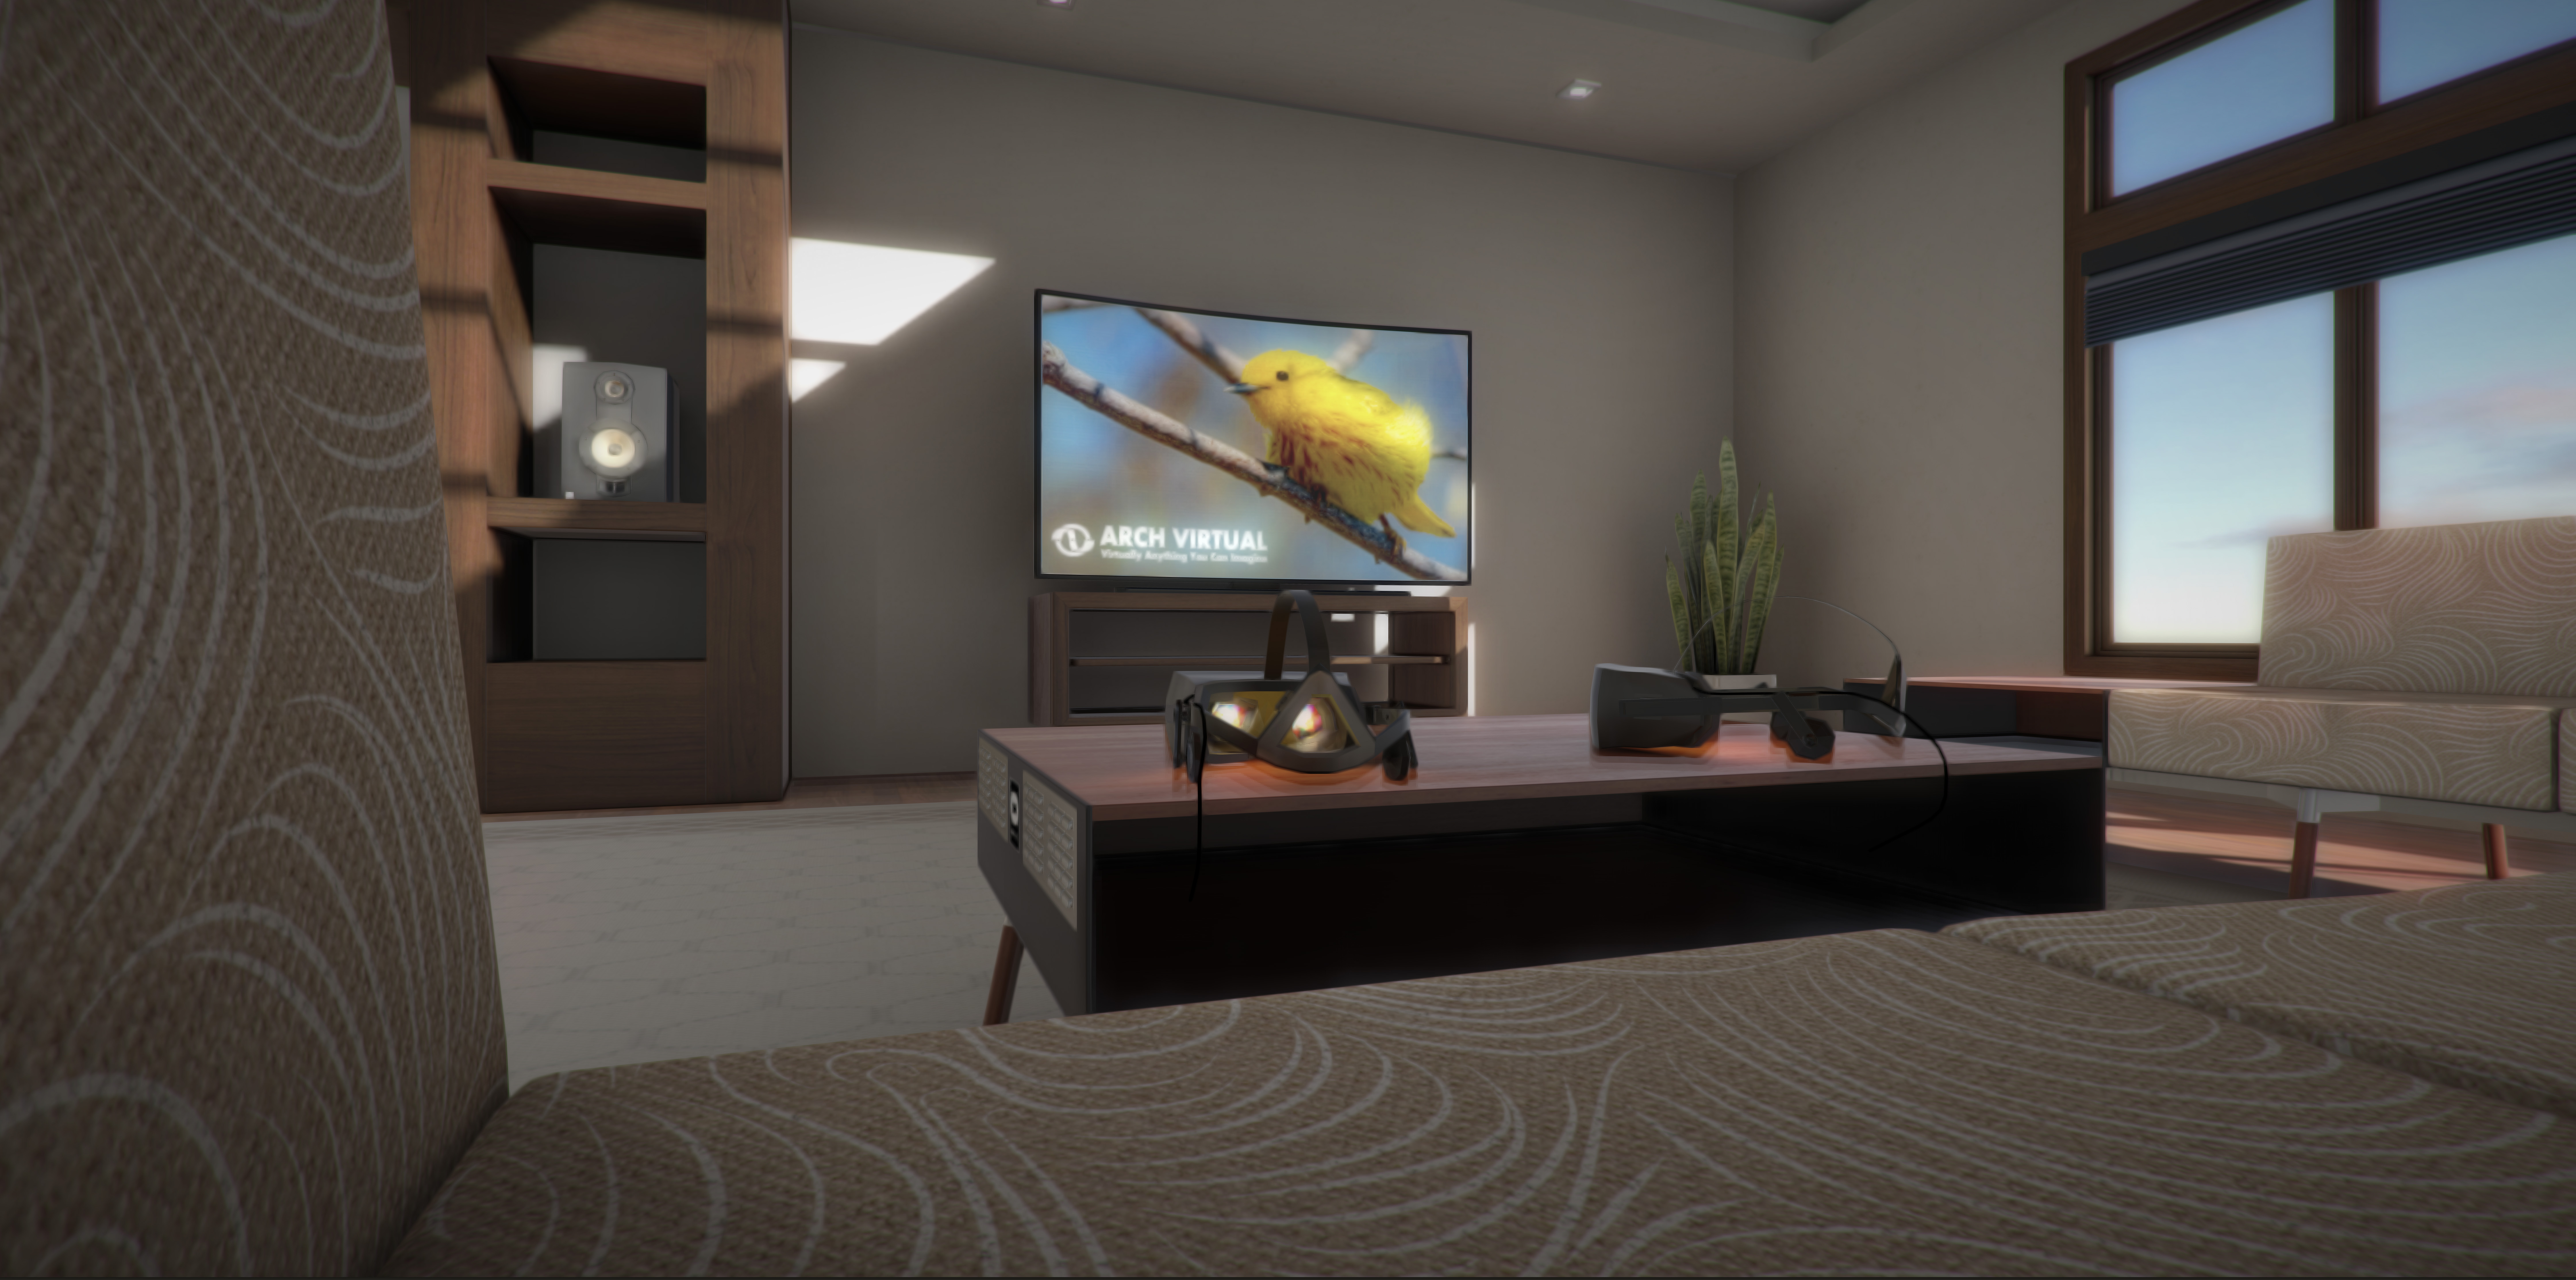 Oculus Rift for real estate and construction visualization for pre-sales marketing and advertising